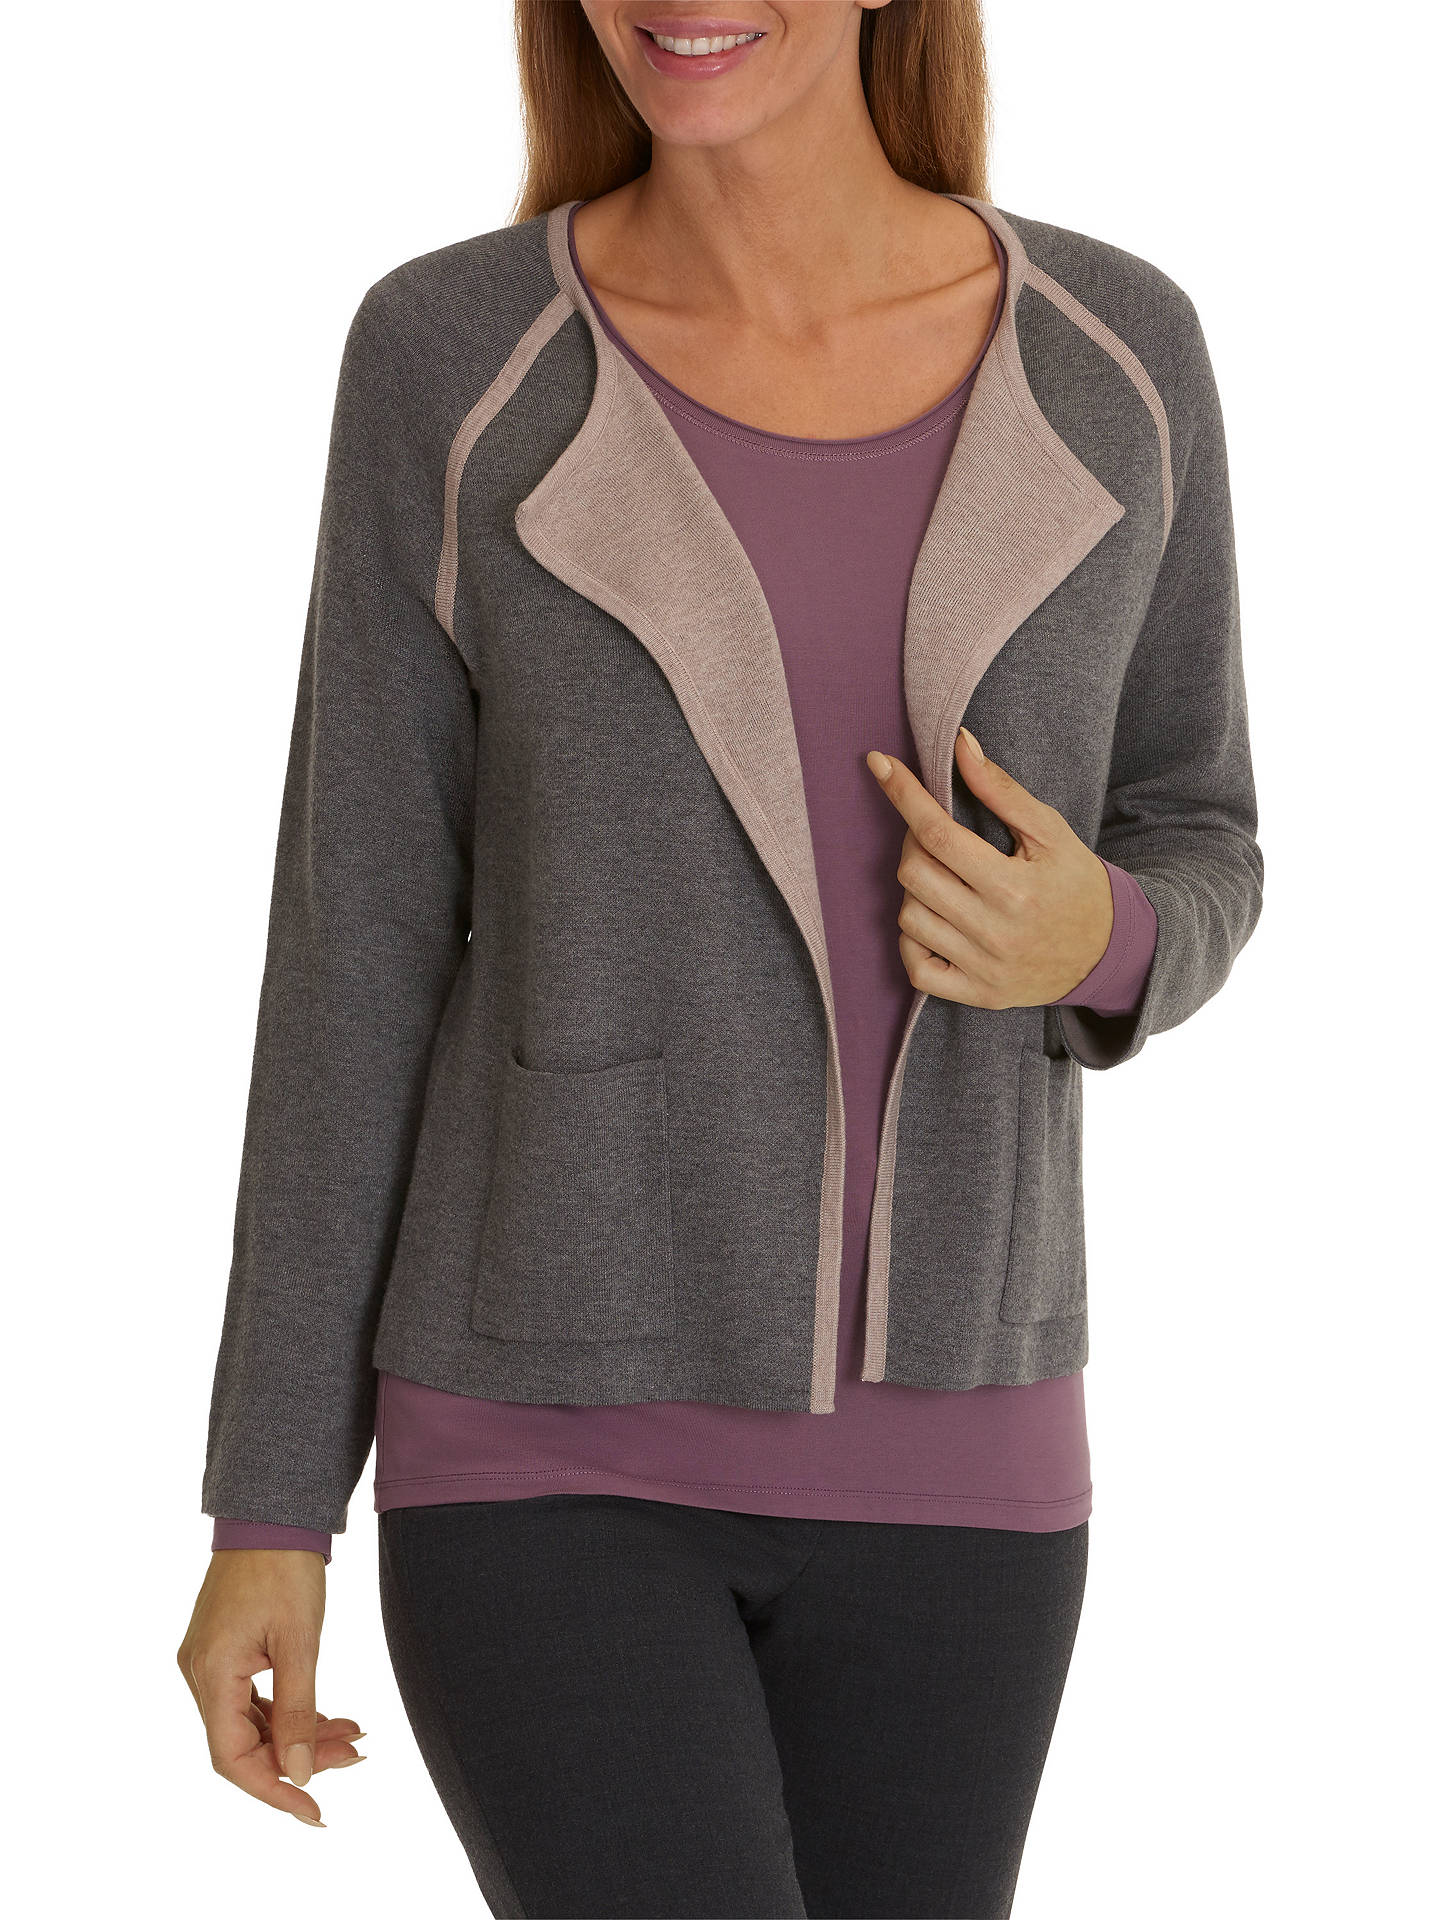 BuyBetty Barclay Waterfall Cardigan, Middle Grey Melange, 8 Online at johnlewis.com